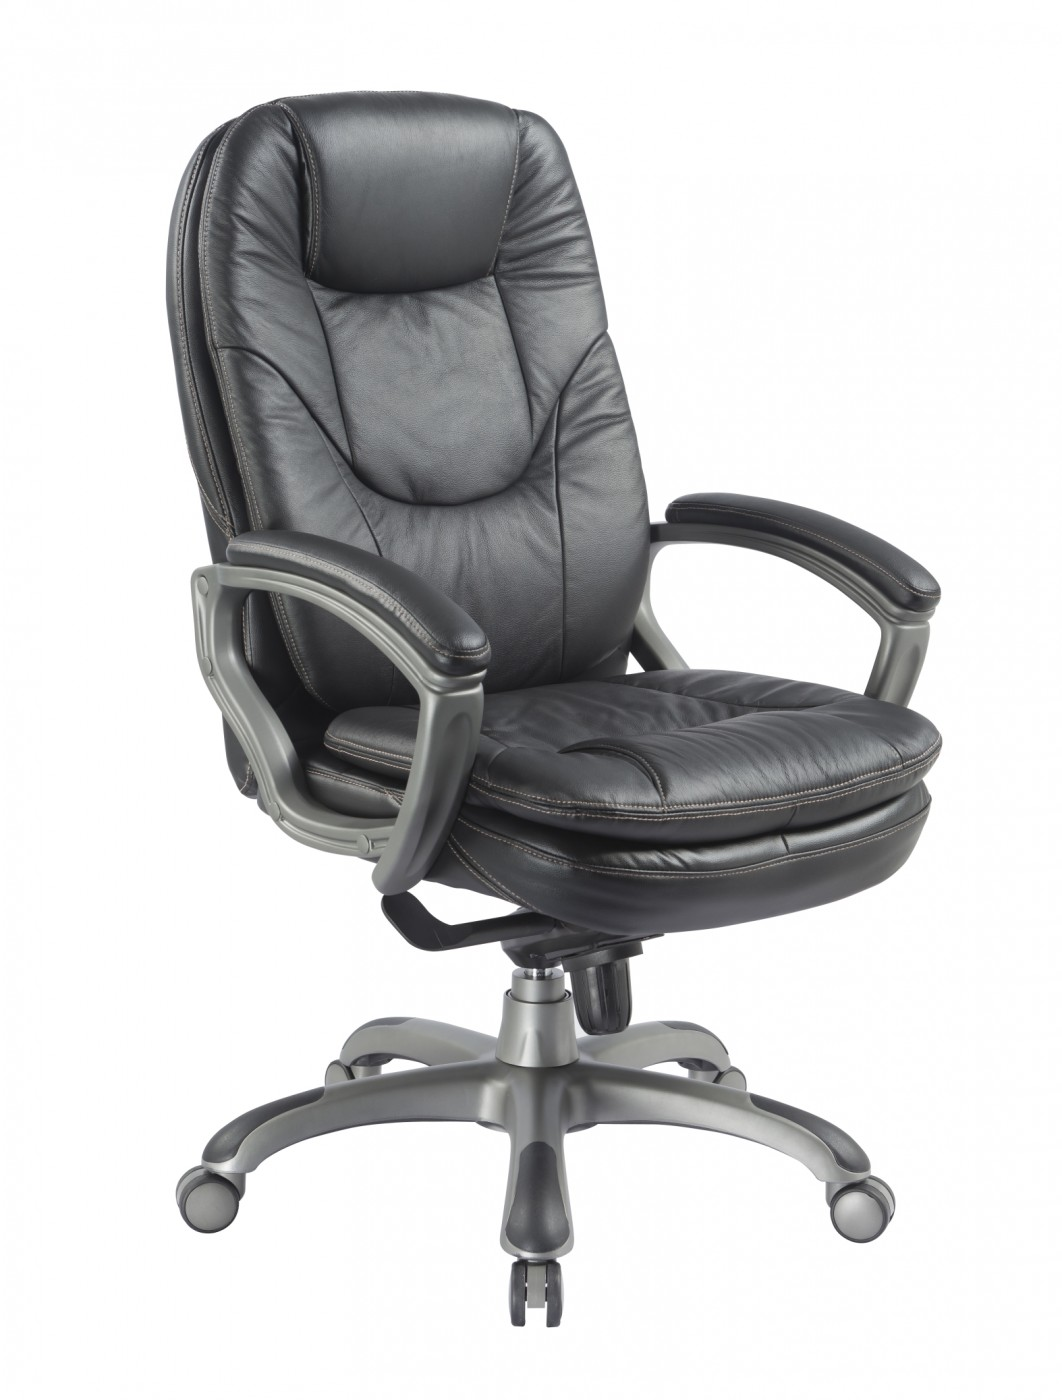 Leather Office Chairs Office Chairs Kiev Leather Office Chair Bcl U646 Lbk